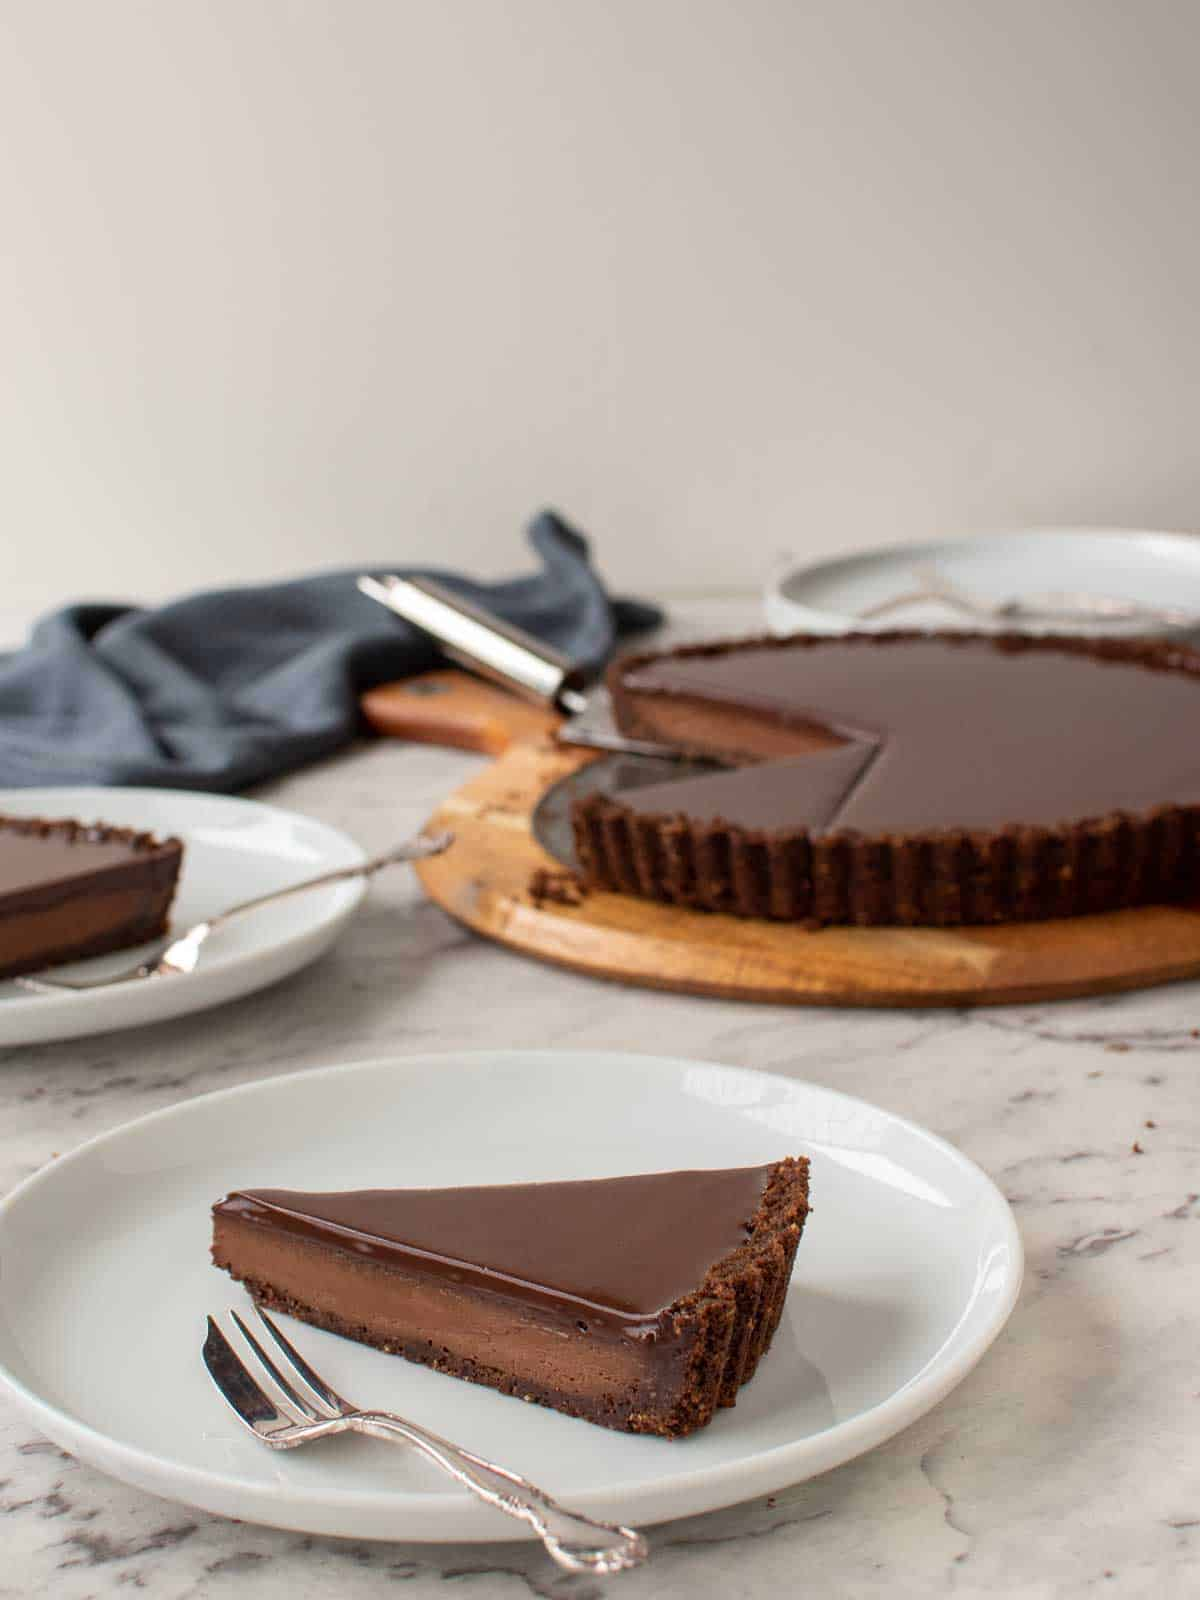 slice of chocolate tart with whole tart in the background.